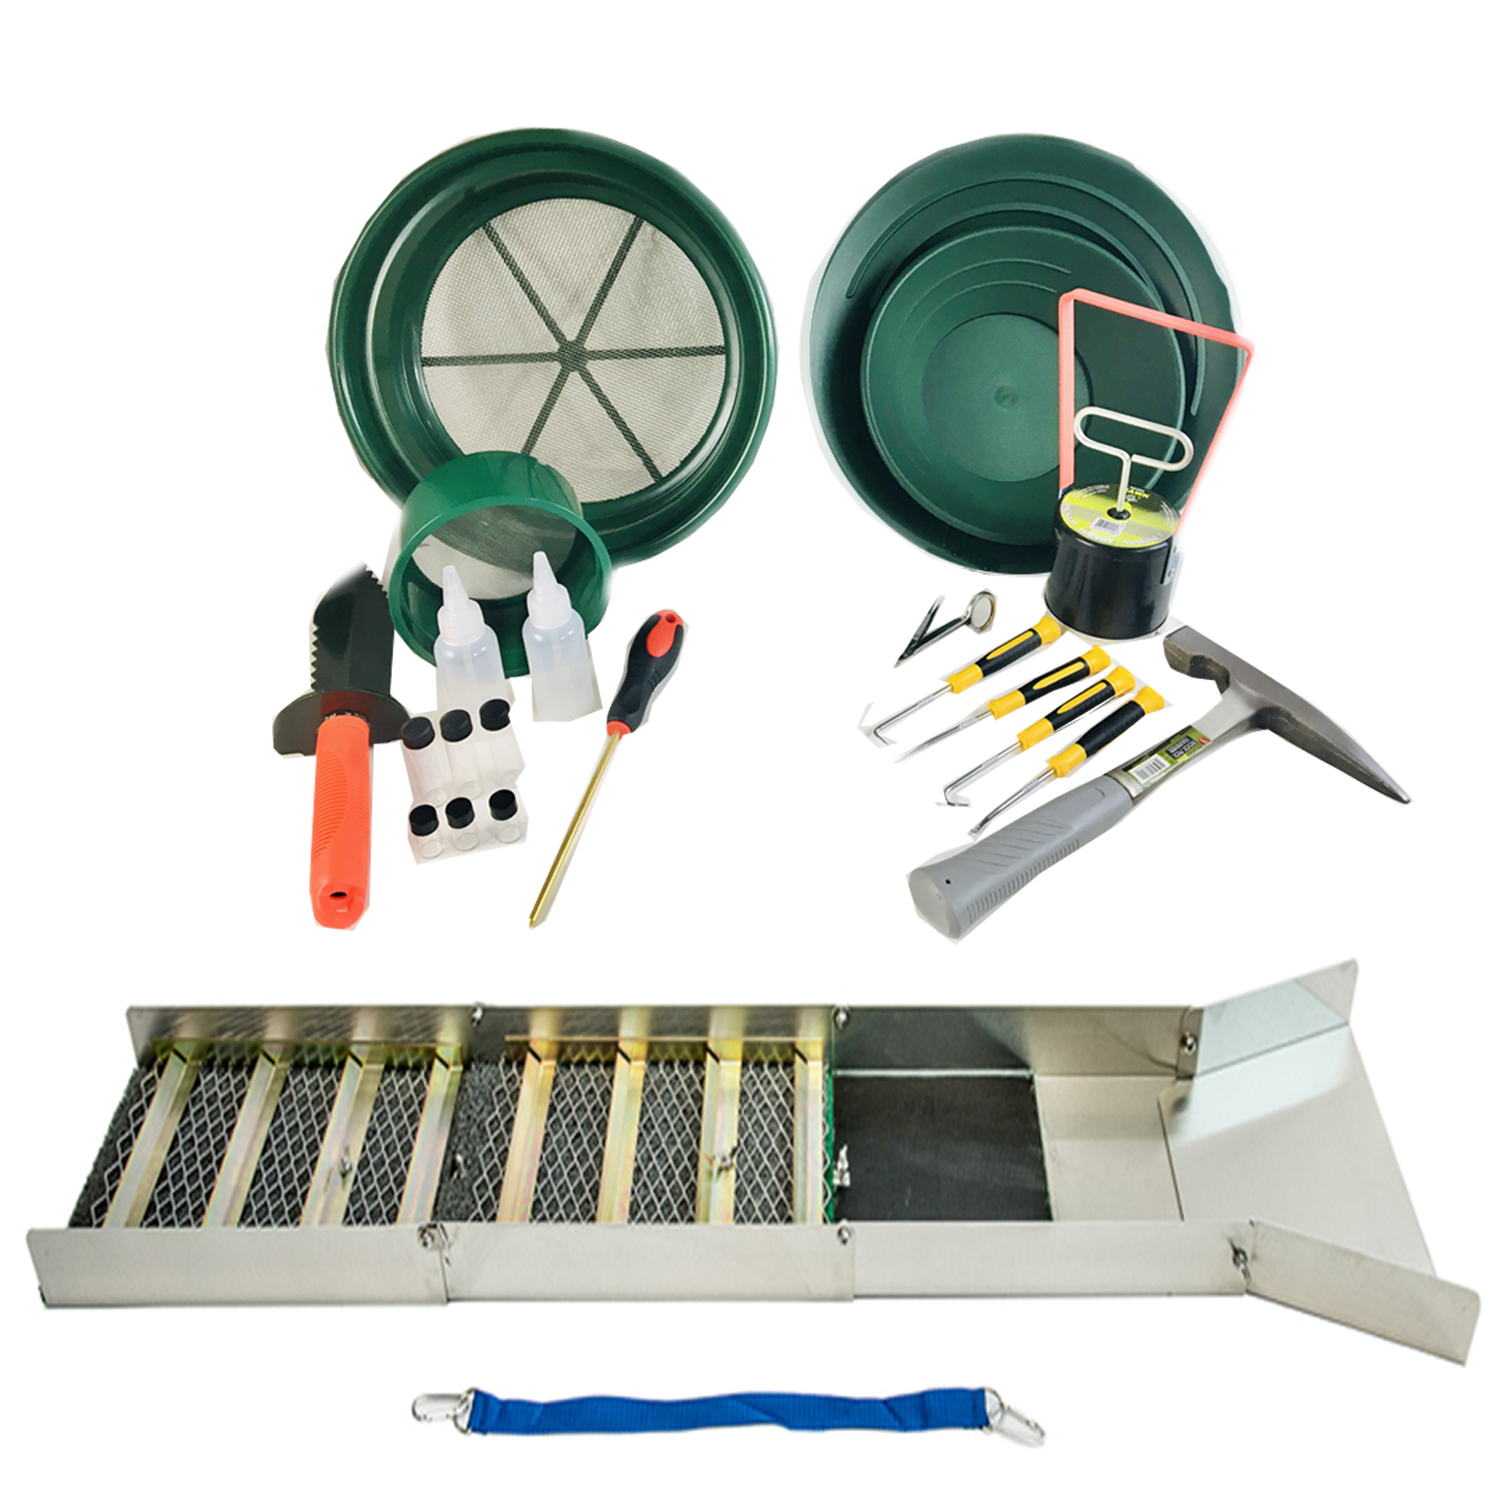 ASR Outdoor 21pc Deluxe Folding Sluice Box Gold Rush Gold Panning Kit with Tools